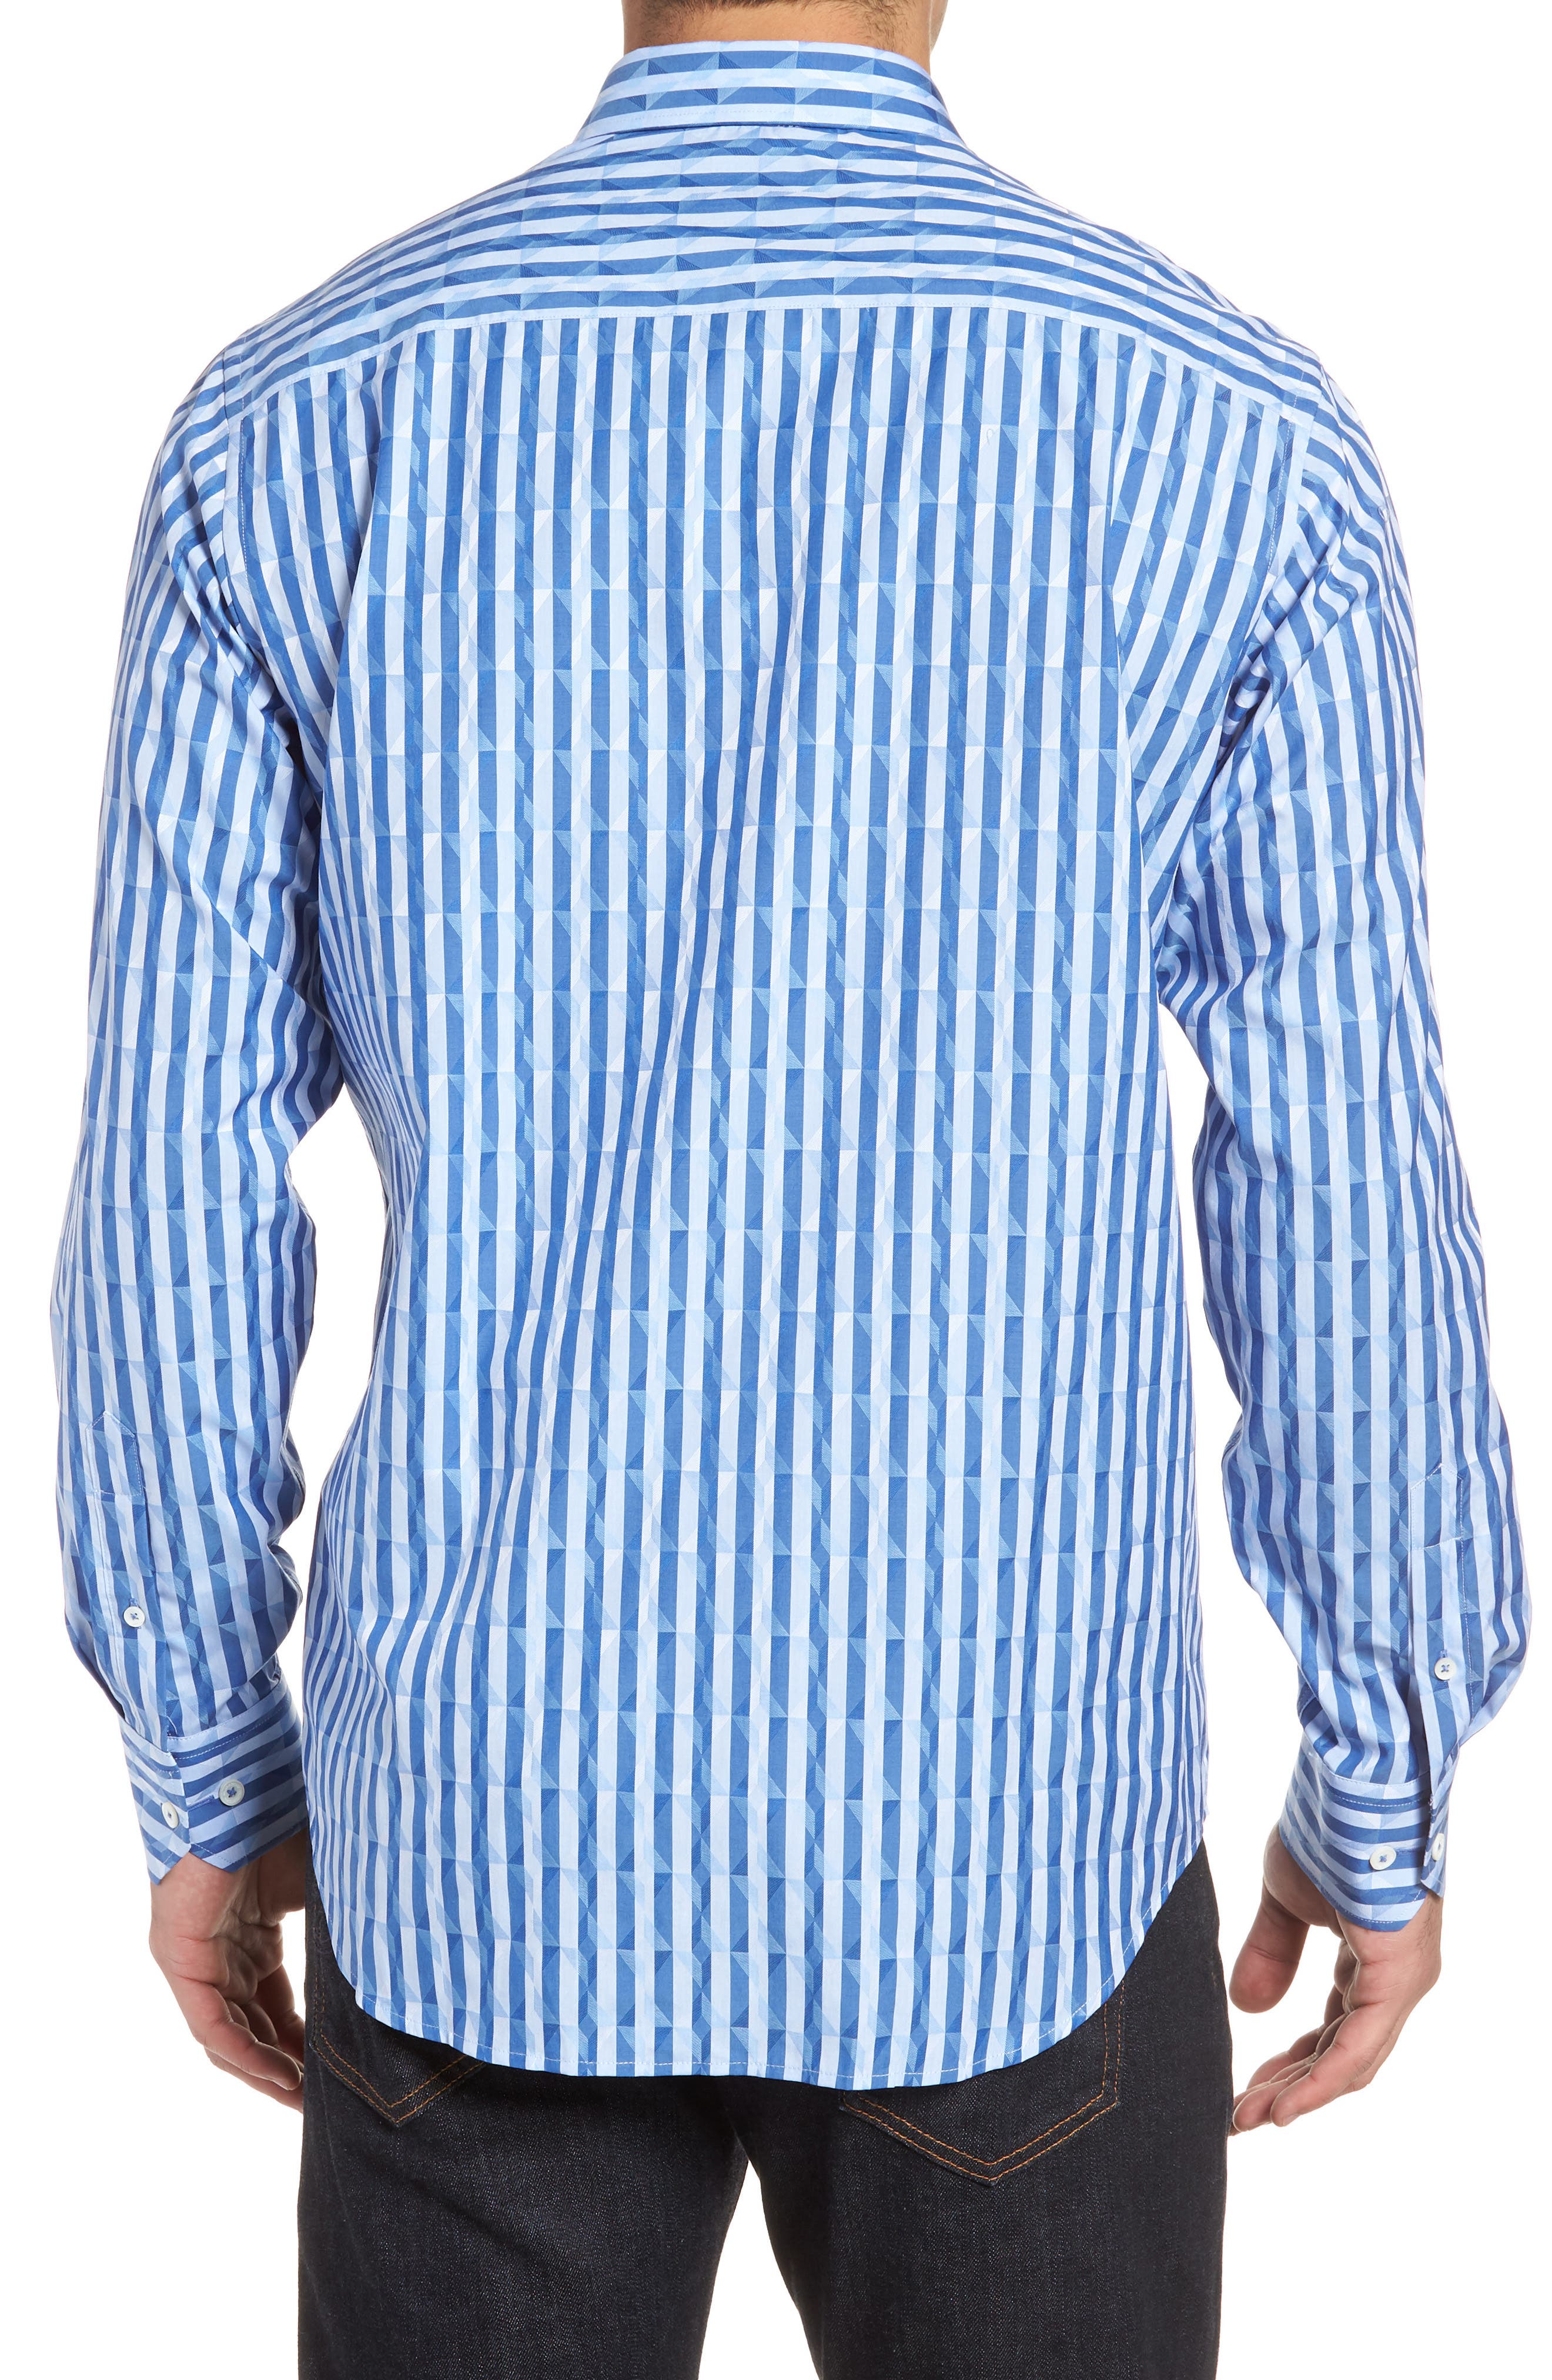 Candy Stripe Geometric Classic Fit Sport Shirt,                             Alternate thumbnail 2, color,                             422